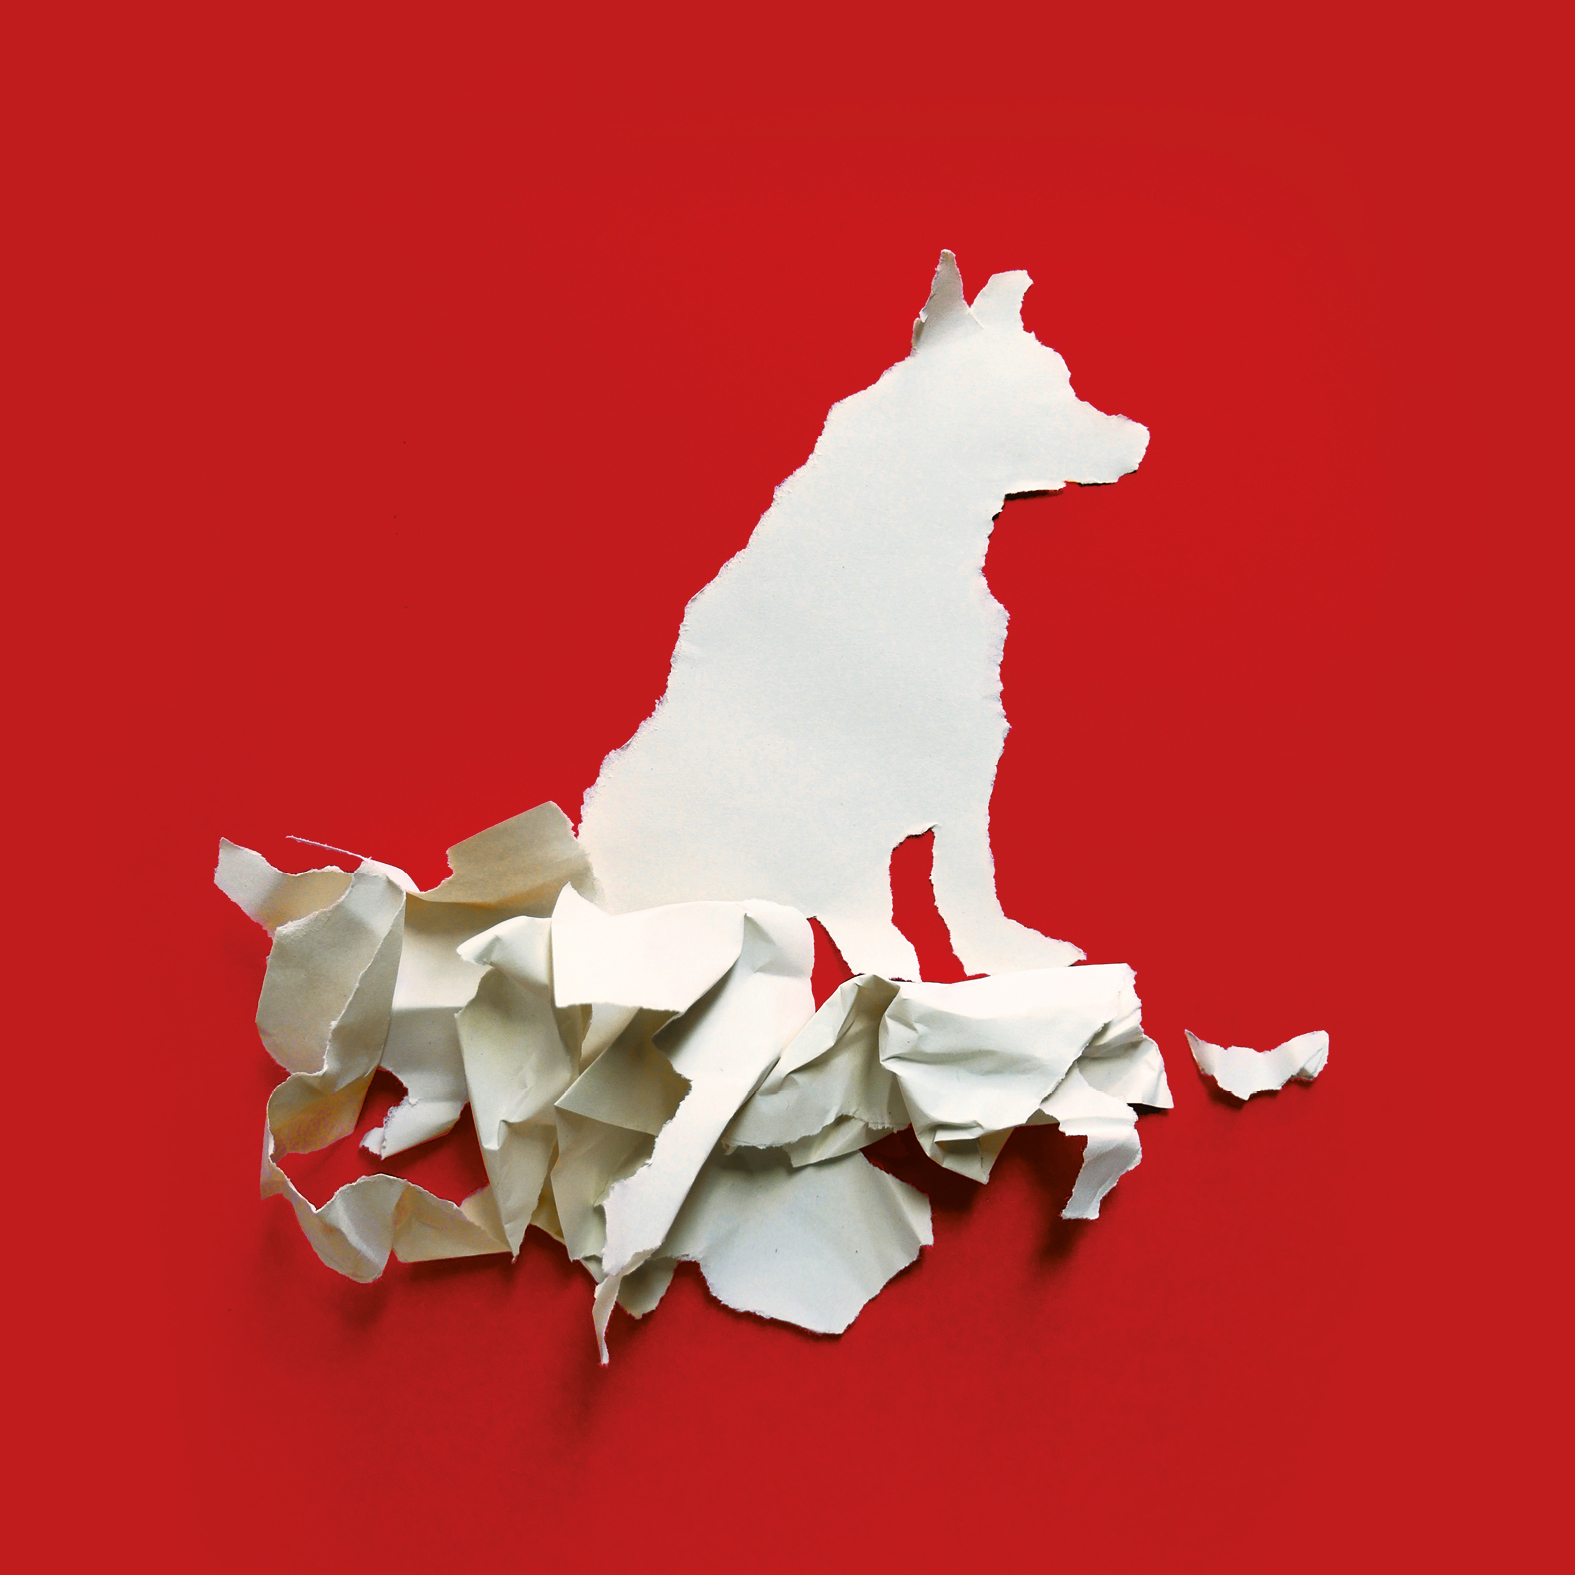 White Dog - Les Anges au plafond